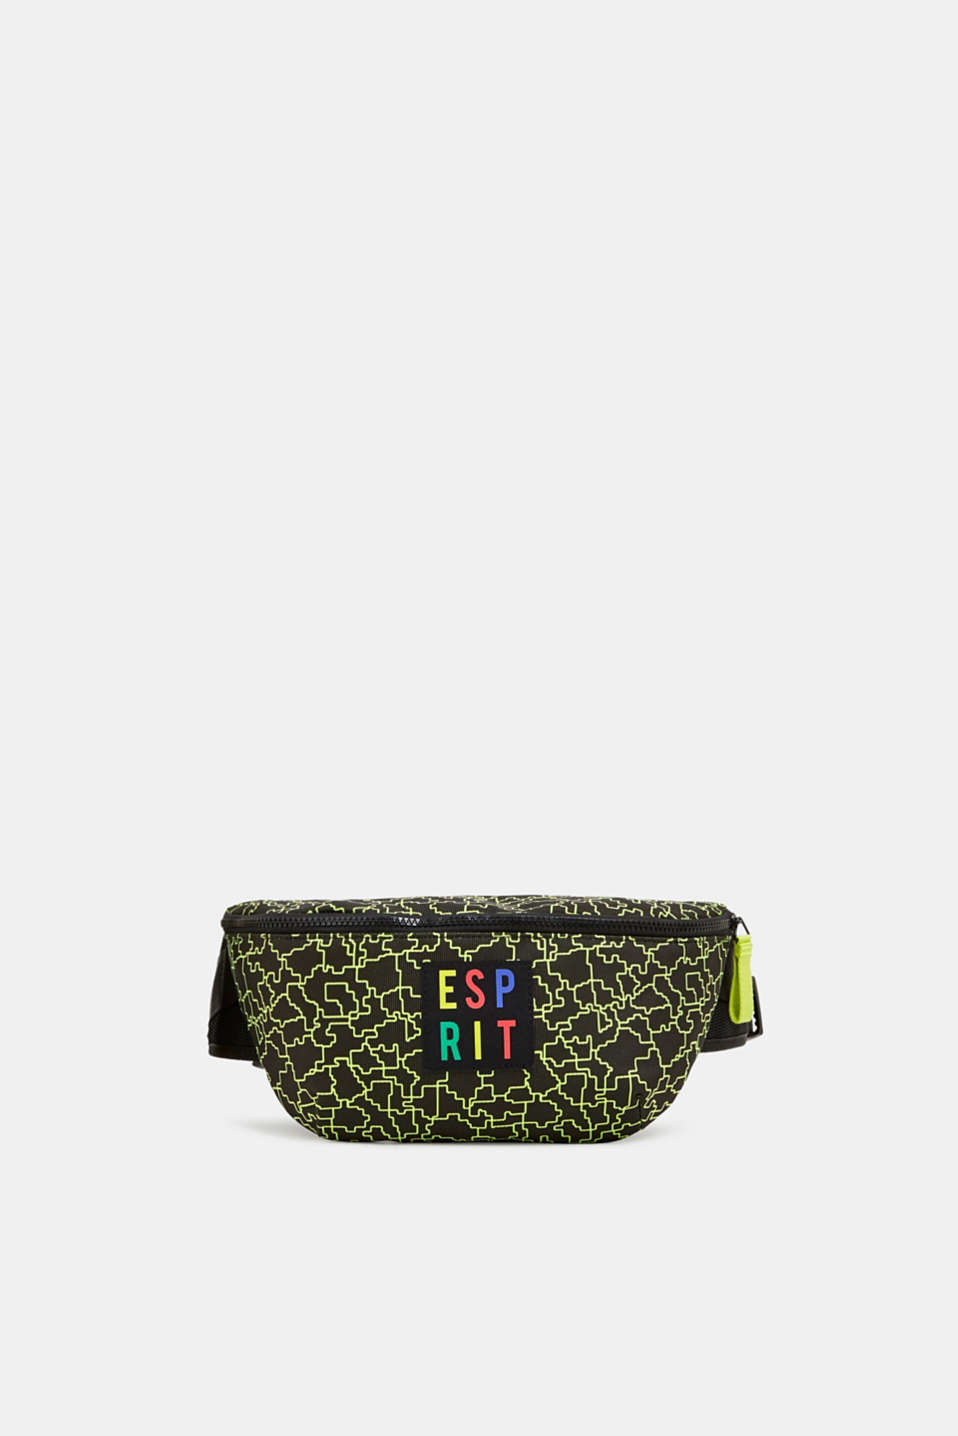 Esprit - #throwback belt bag med neonfarvet logoprint